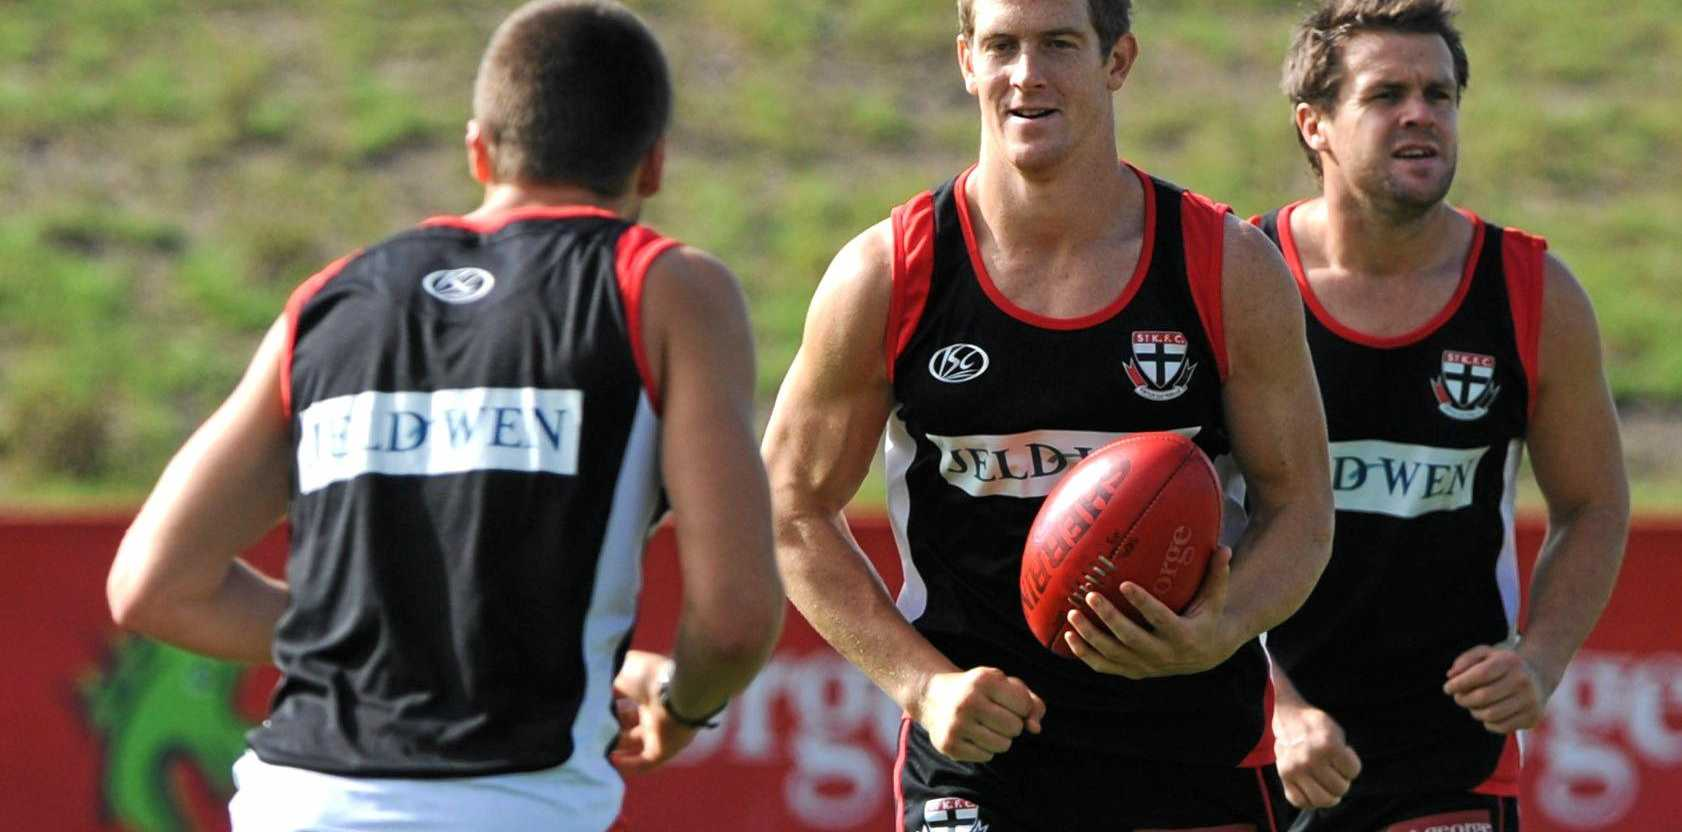 St Kilda player Nick Dal Santo trains at in Melbourne, Wednesday, April 21, 2010. Dal Santo is one the key forwards who is expected to fill the role of the injured captain Nick Riewoldt. (AAP Image/Julian Smith) NO ARCHIVING